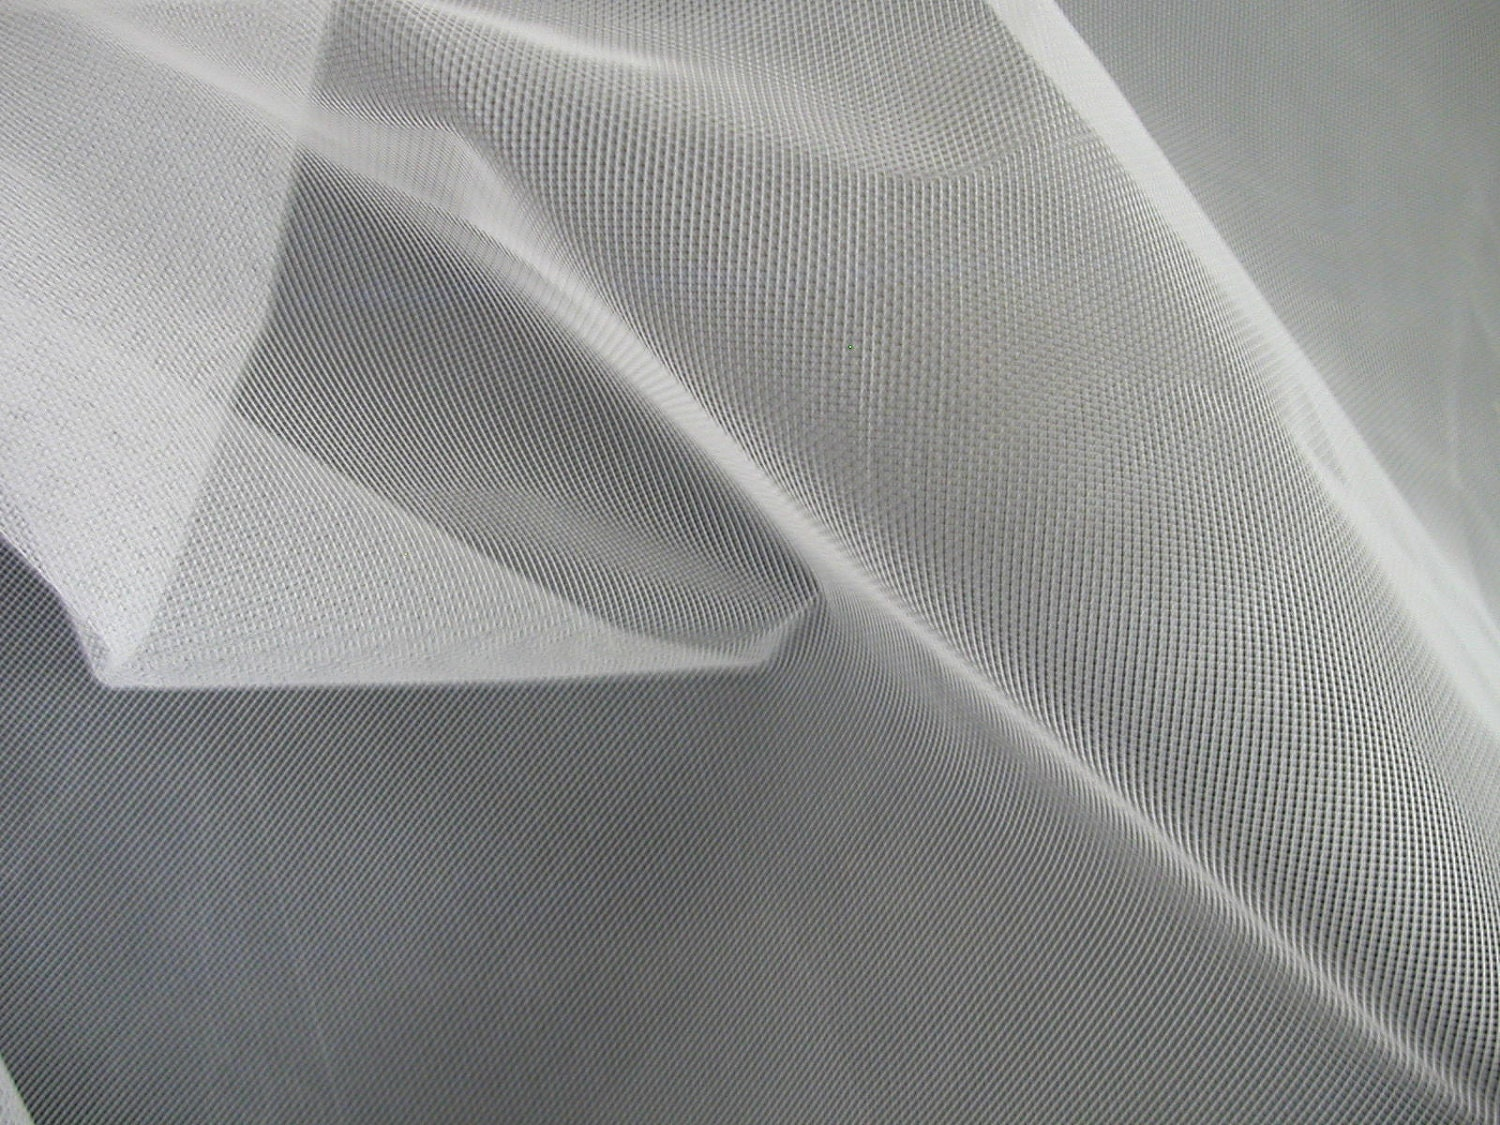 Stiff White Woven Crinoline Fabric 1 Yard Sm134 By Sewmanatee